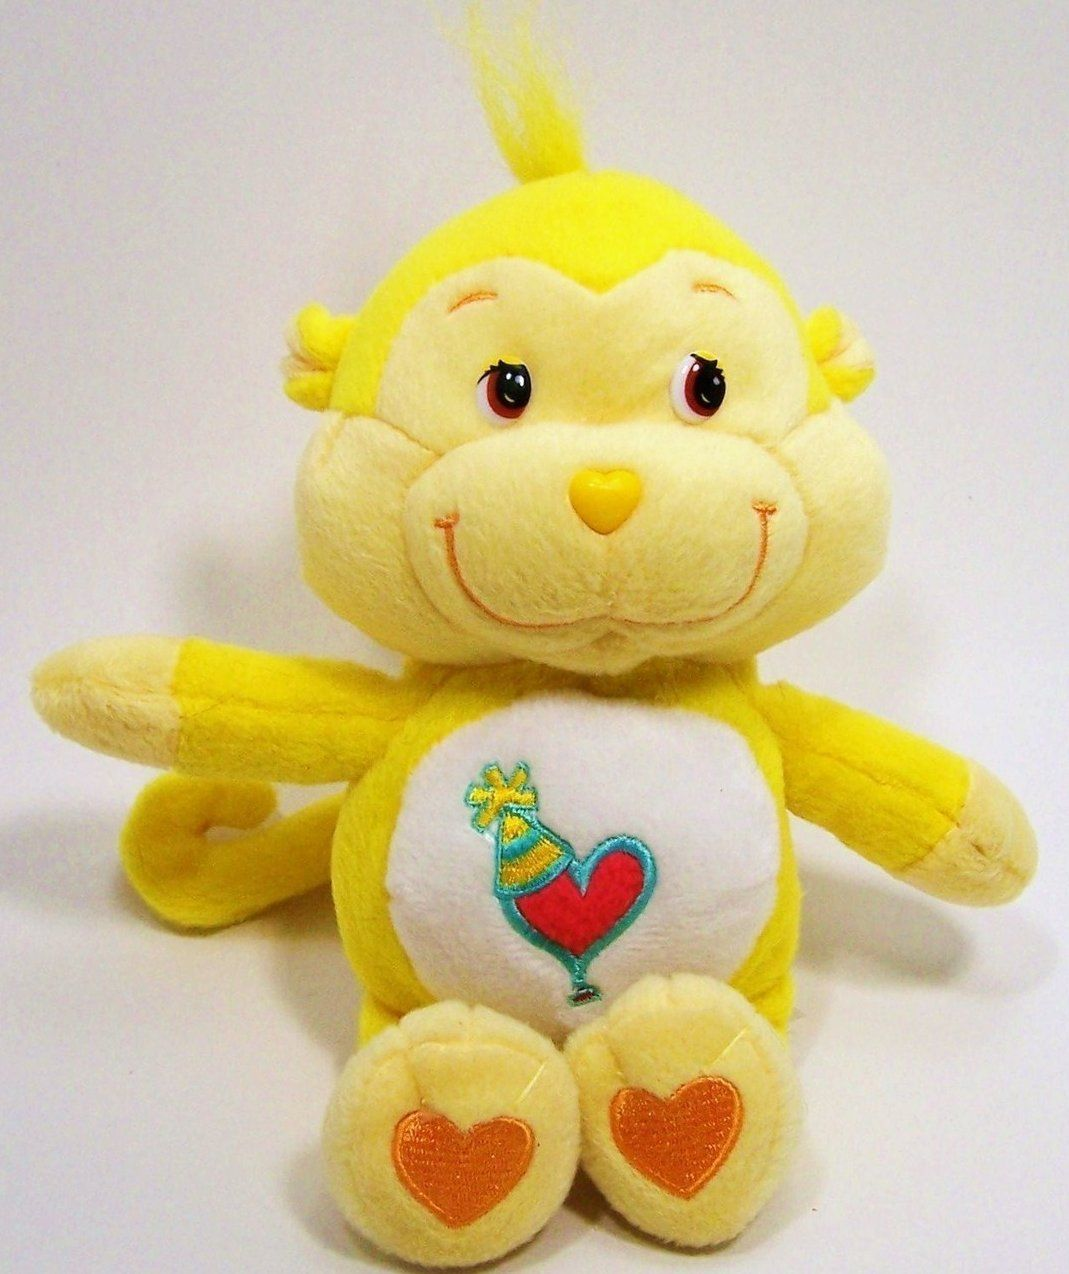 All the care bears plush image 0 of care bear cousins